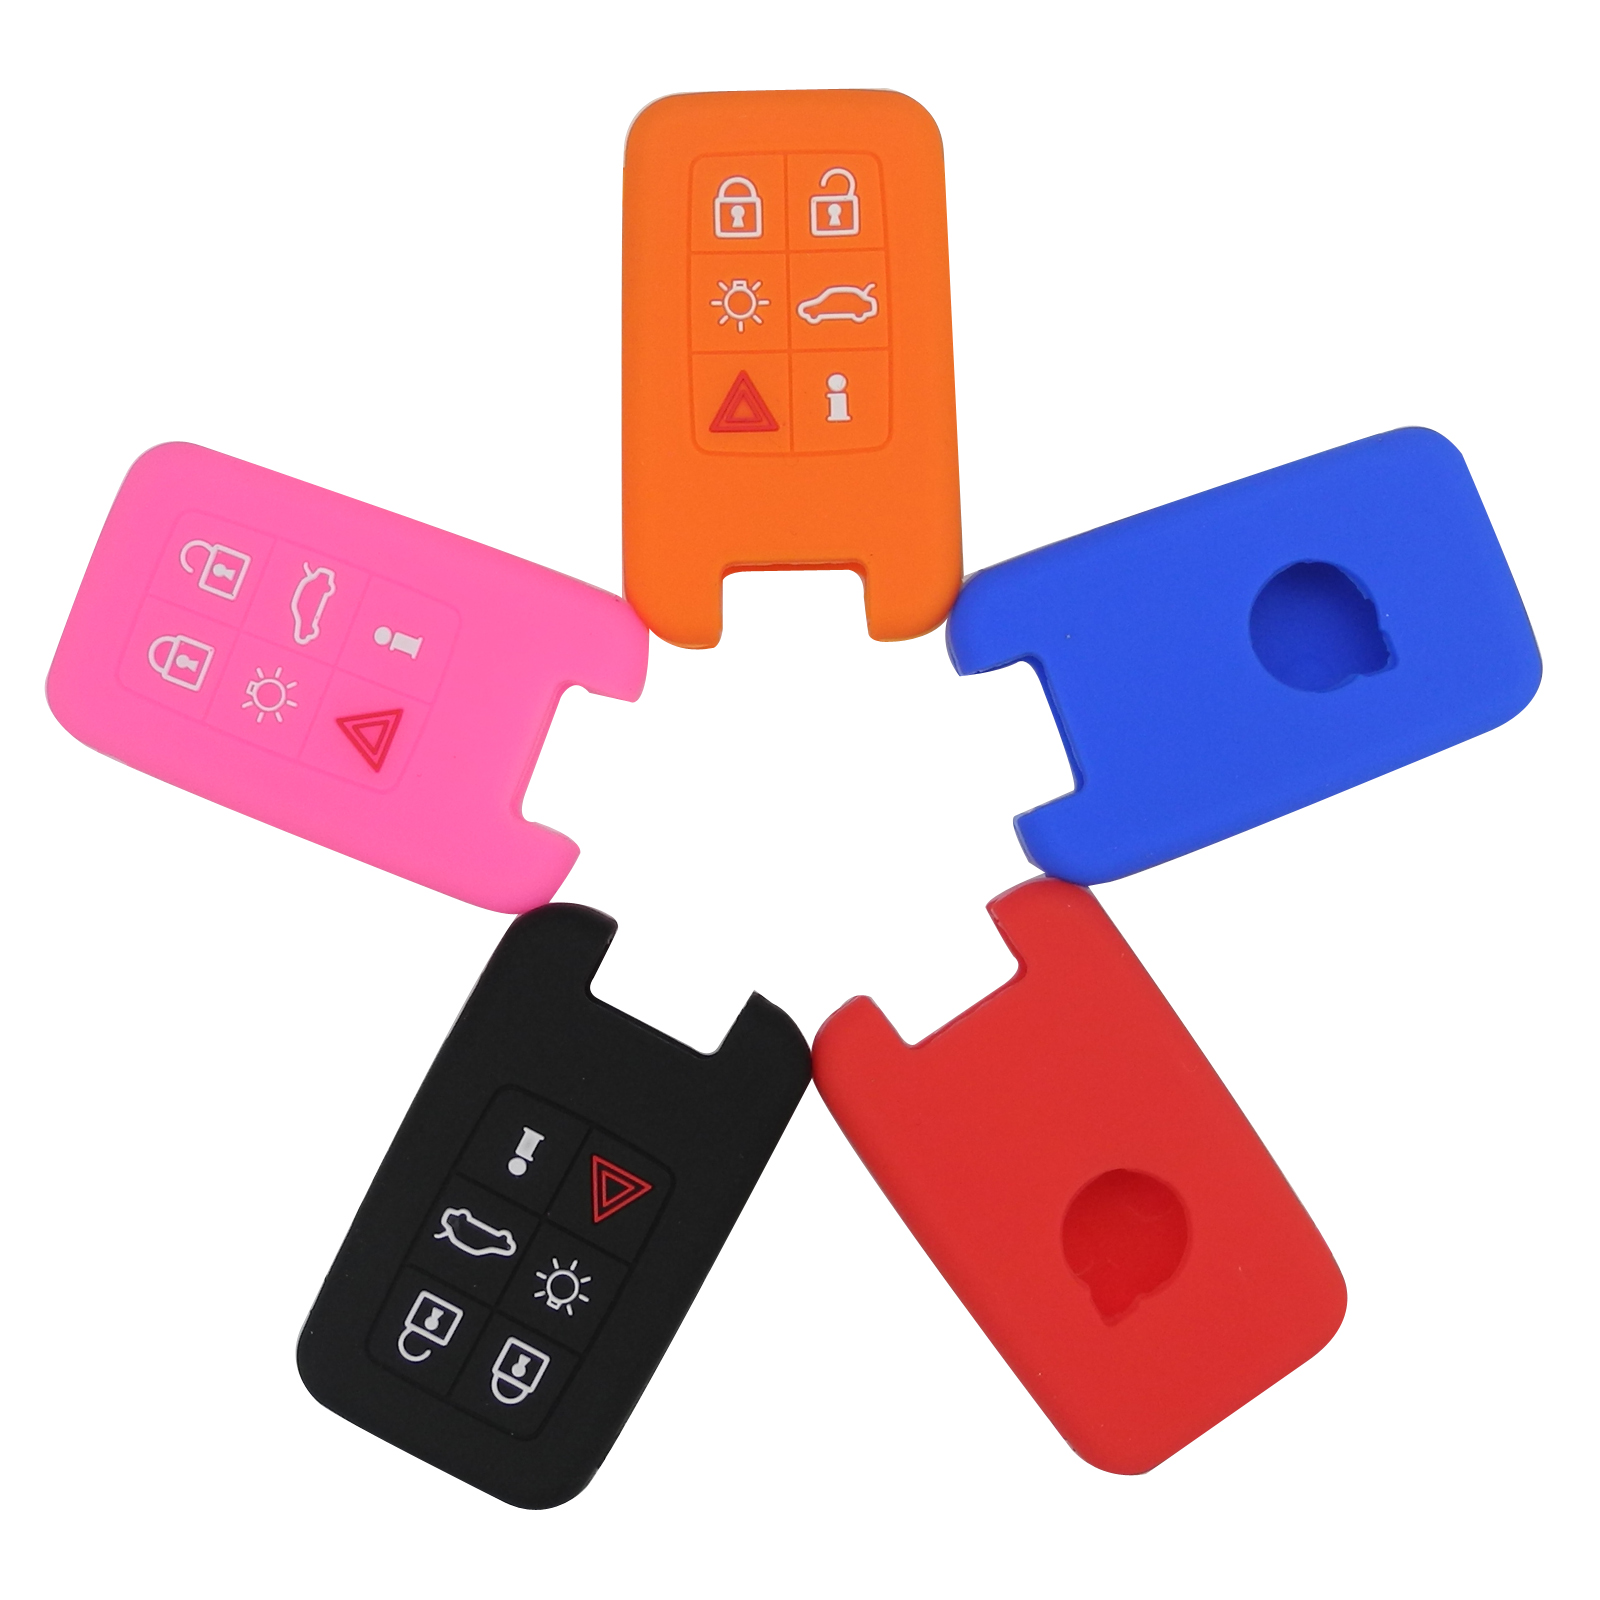 6 Buttons Car Key Case for Volvo C30 C70 S40 S60 S70 S80 V40 V50 V70 XC60 XC90 Smart Remote Car Key Silicone Case Cover whatskey uncut blade transponder ignition car key shell case for volvo s40 s60 s70 s80 v40 v70 xc60 xc70 xc90 850 960 c70 v7 d30